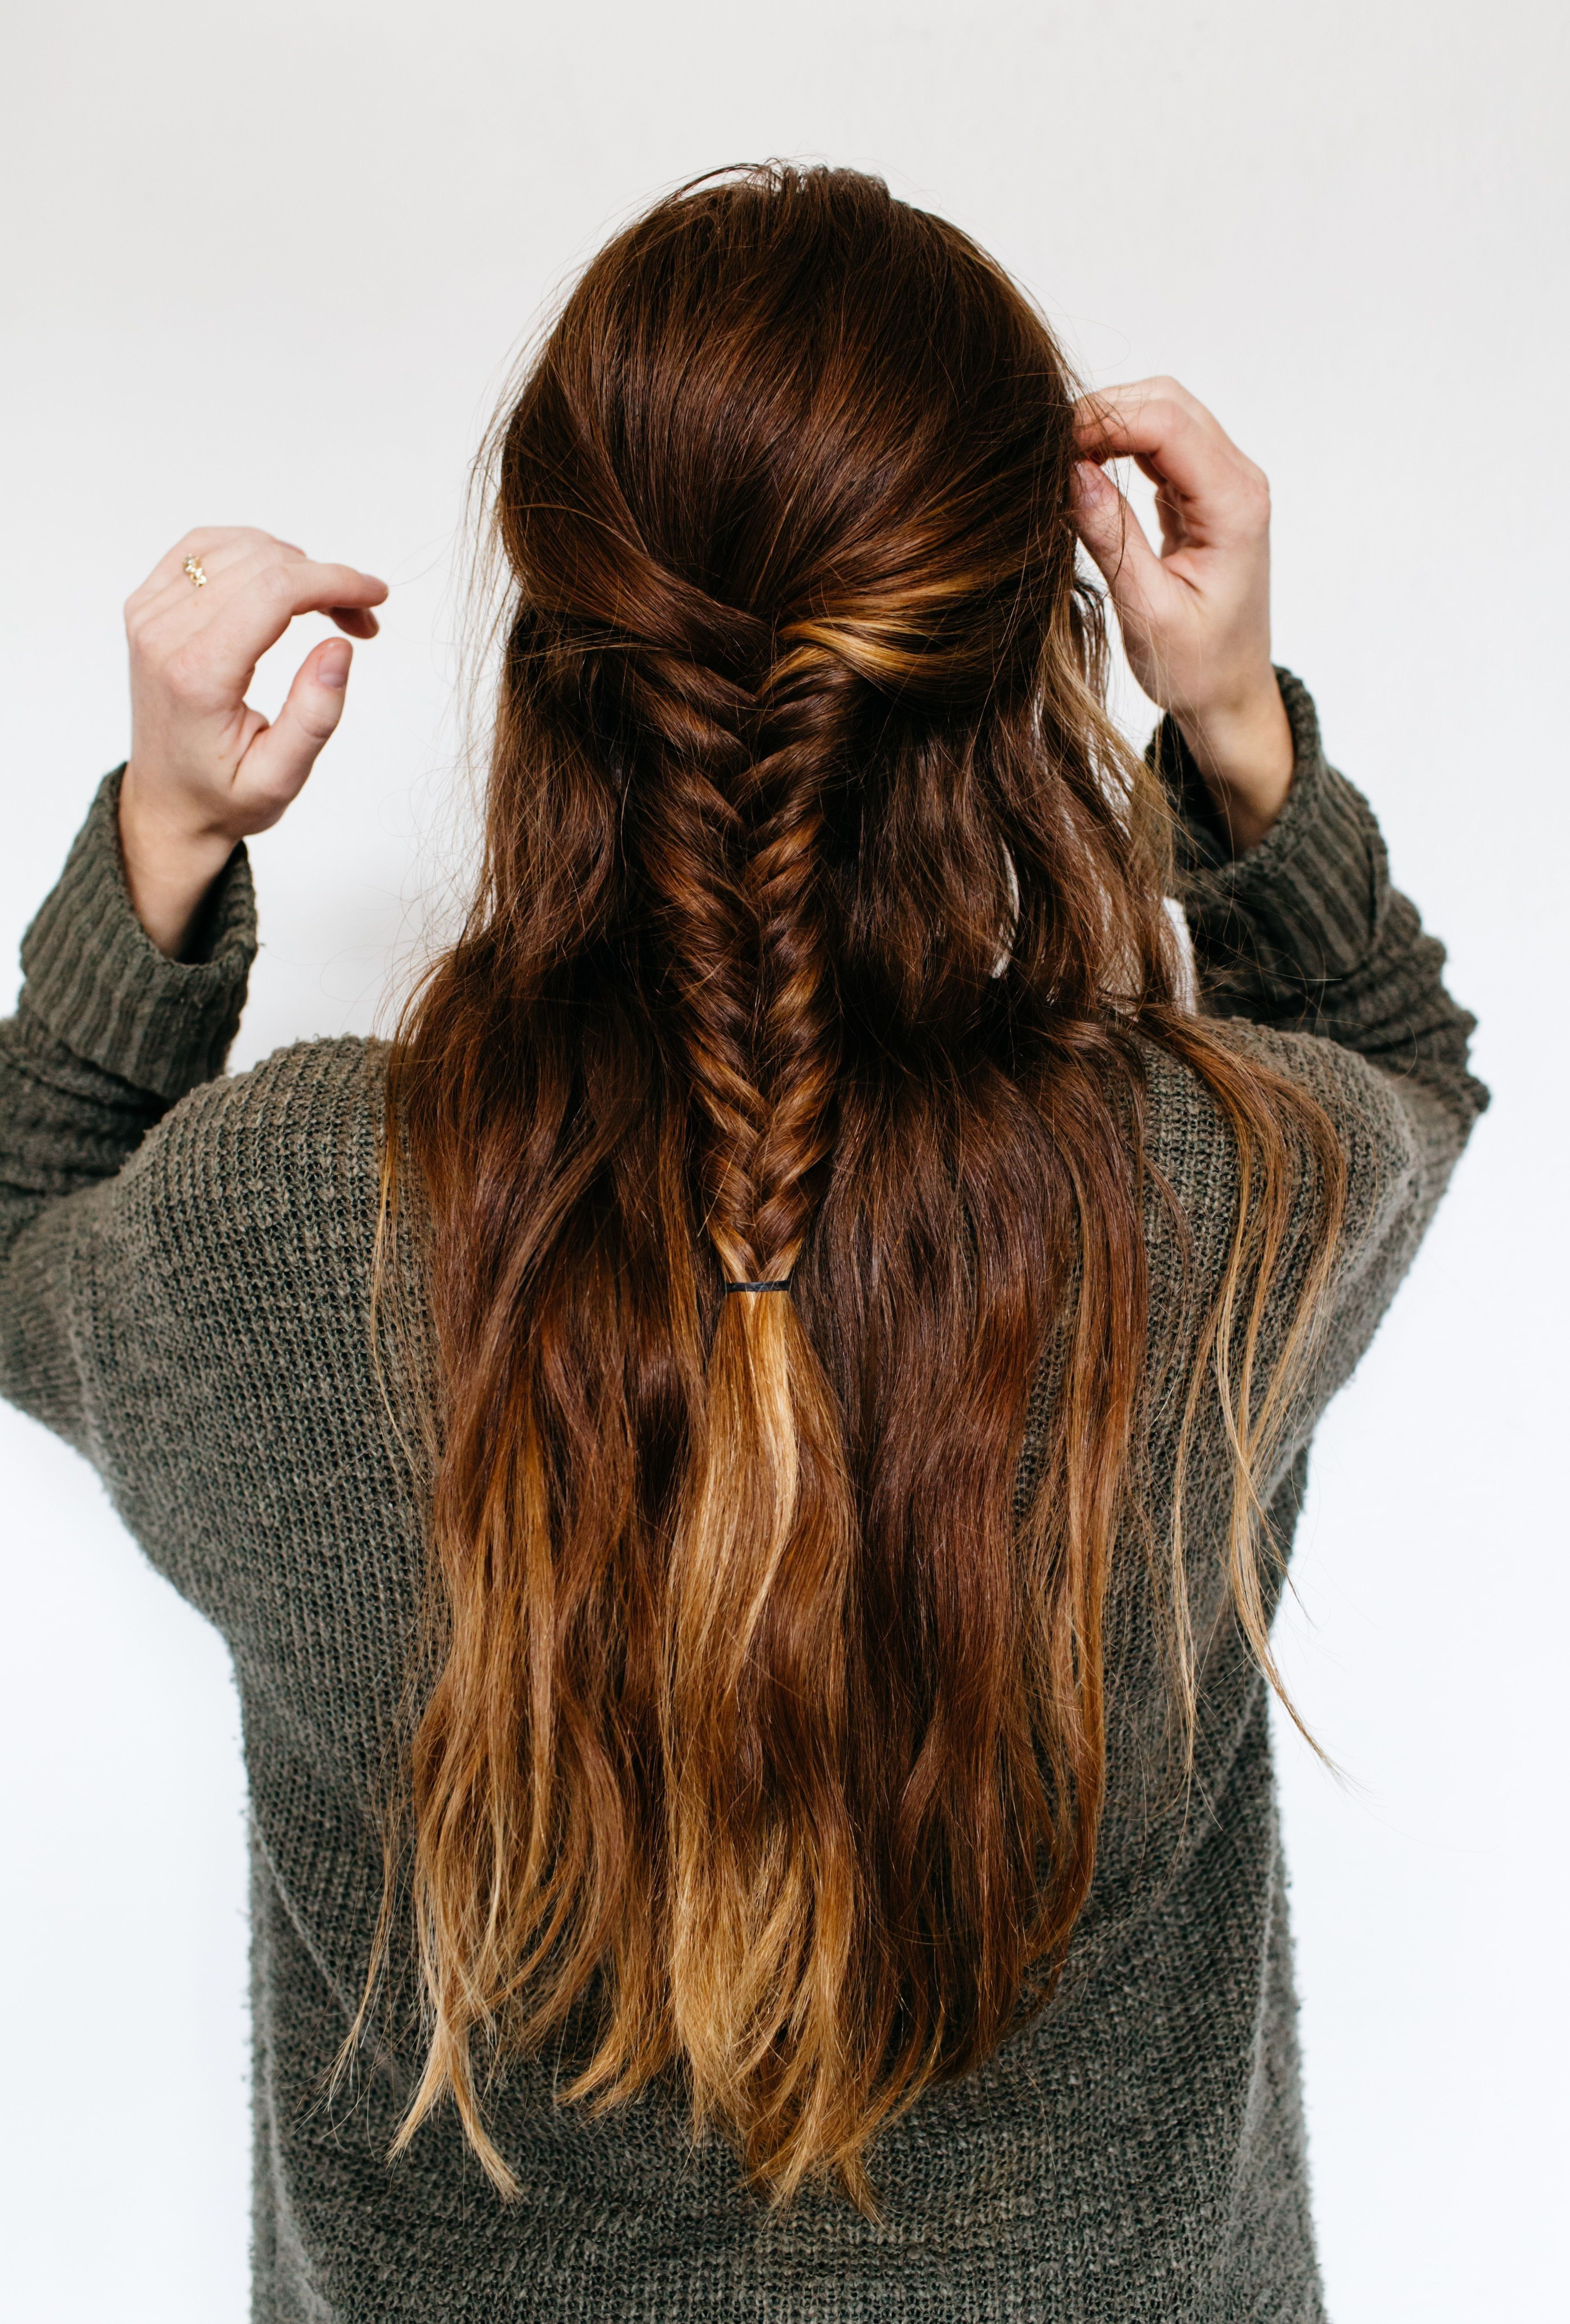 39 Trendy Messy Chic Braided Hairstyles Long Hair Styles Braided Hairstyles Hair